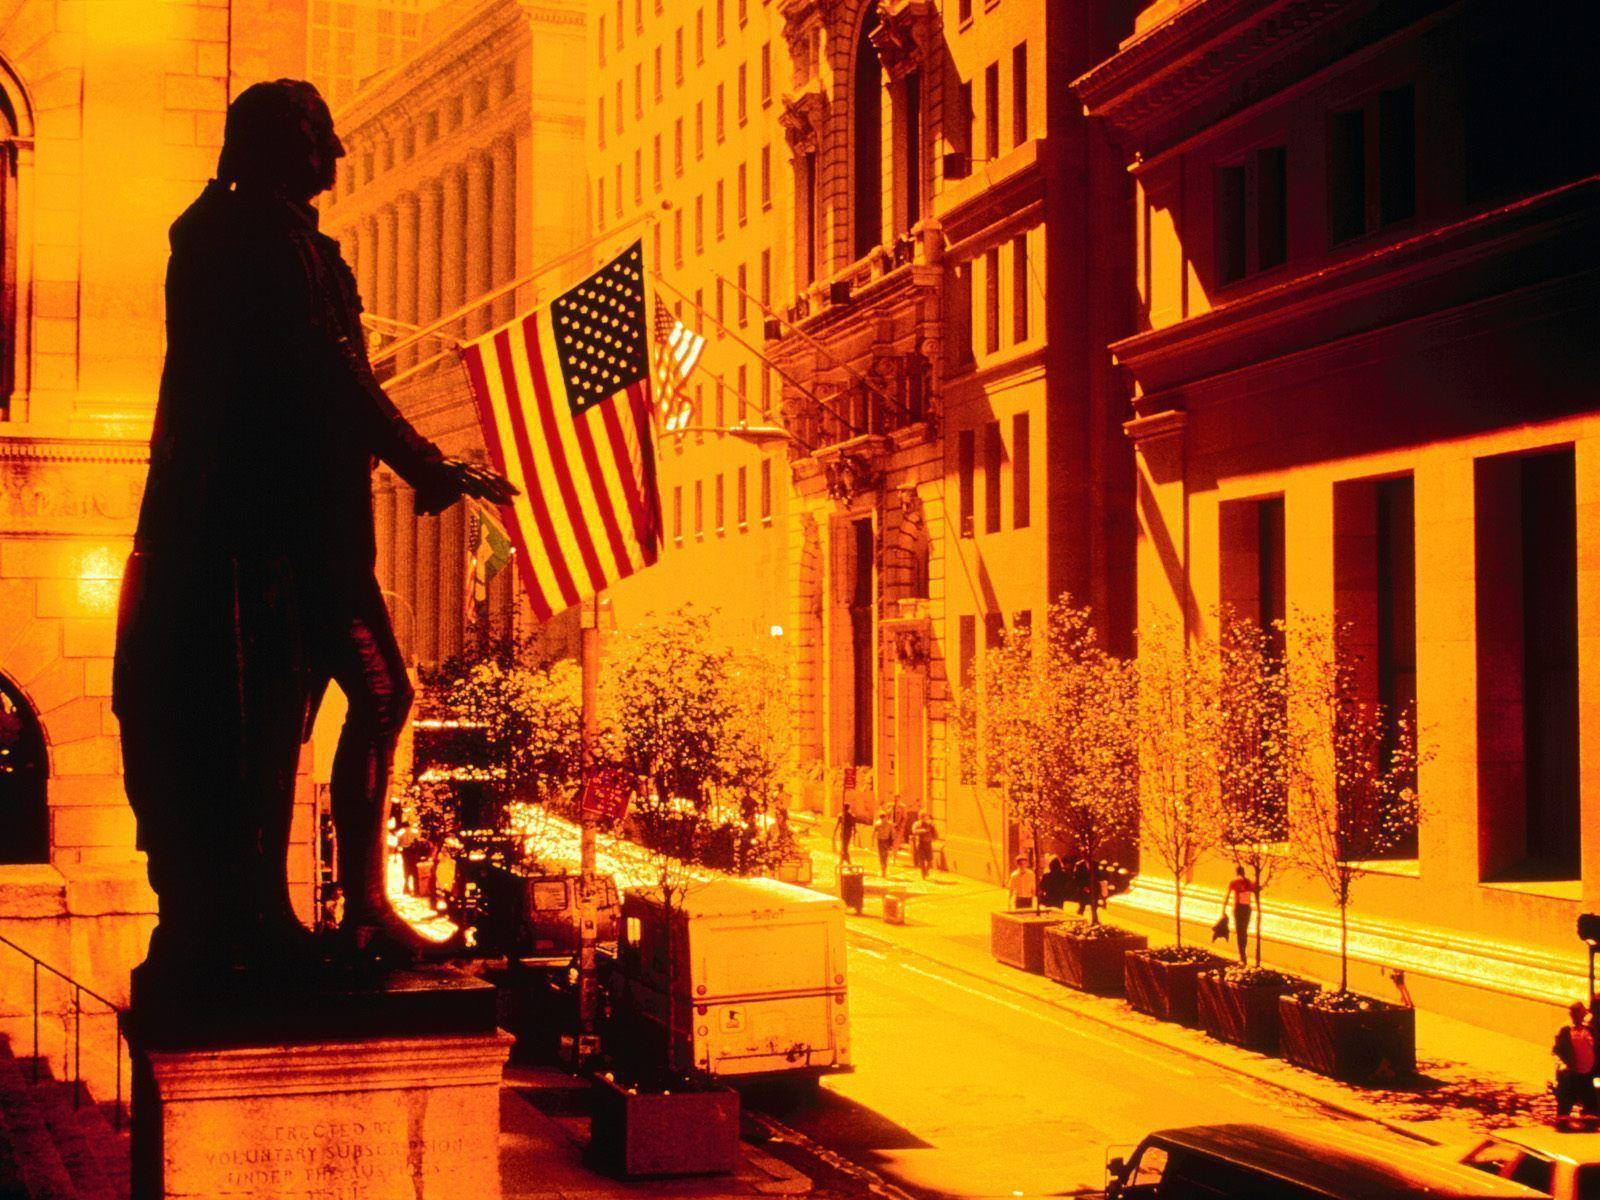 Image For > Wall Street Wallpaper Backgrounds